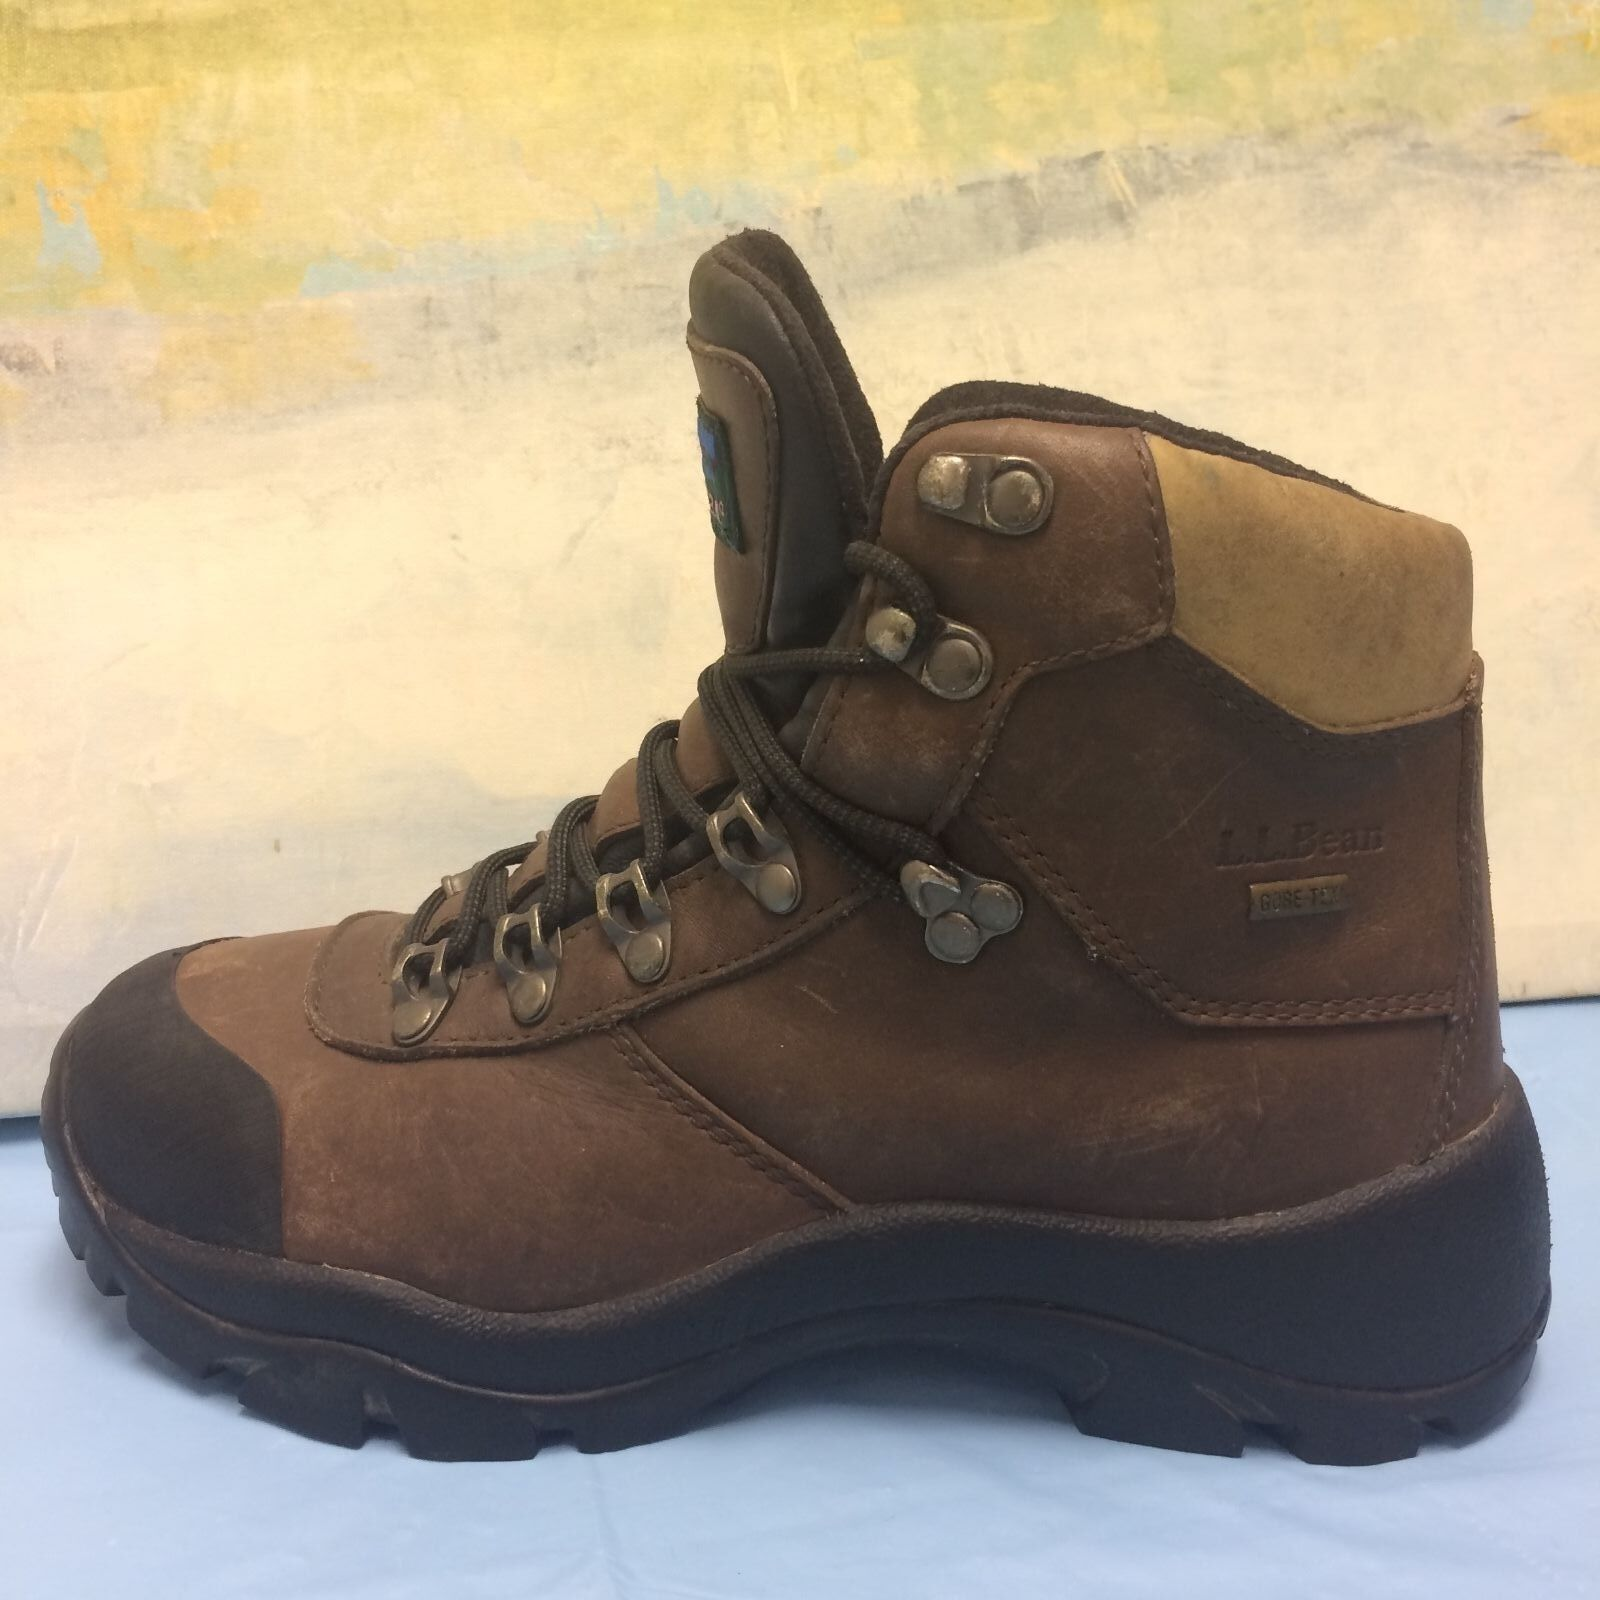 L.L.Bean goretex Damens boot Größe 8.5 medium 05330